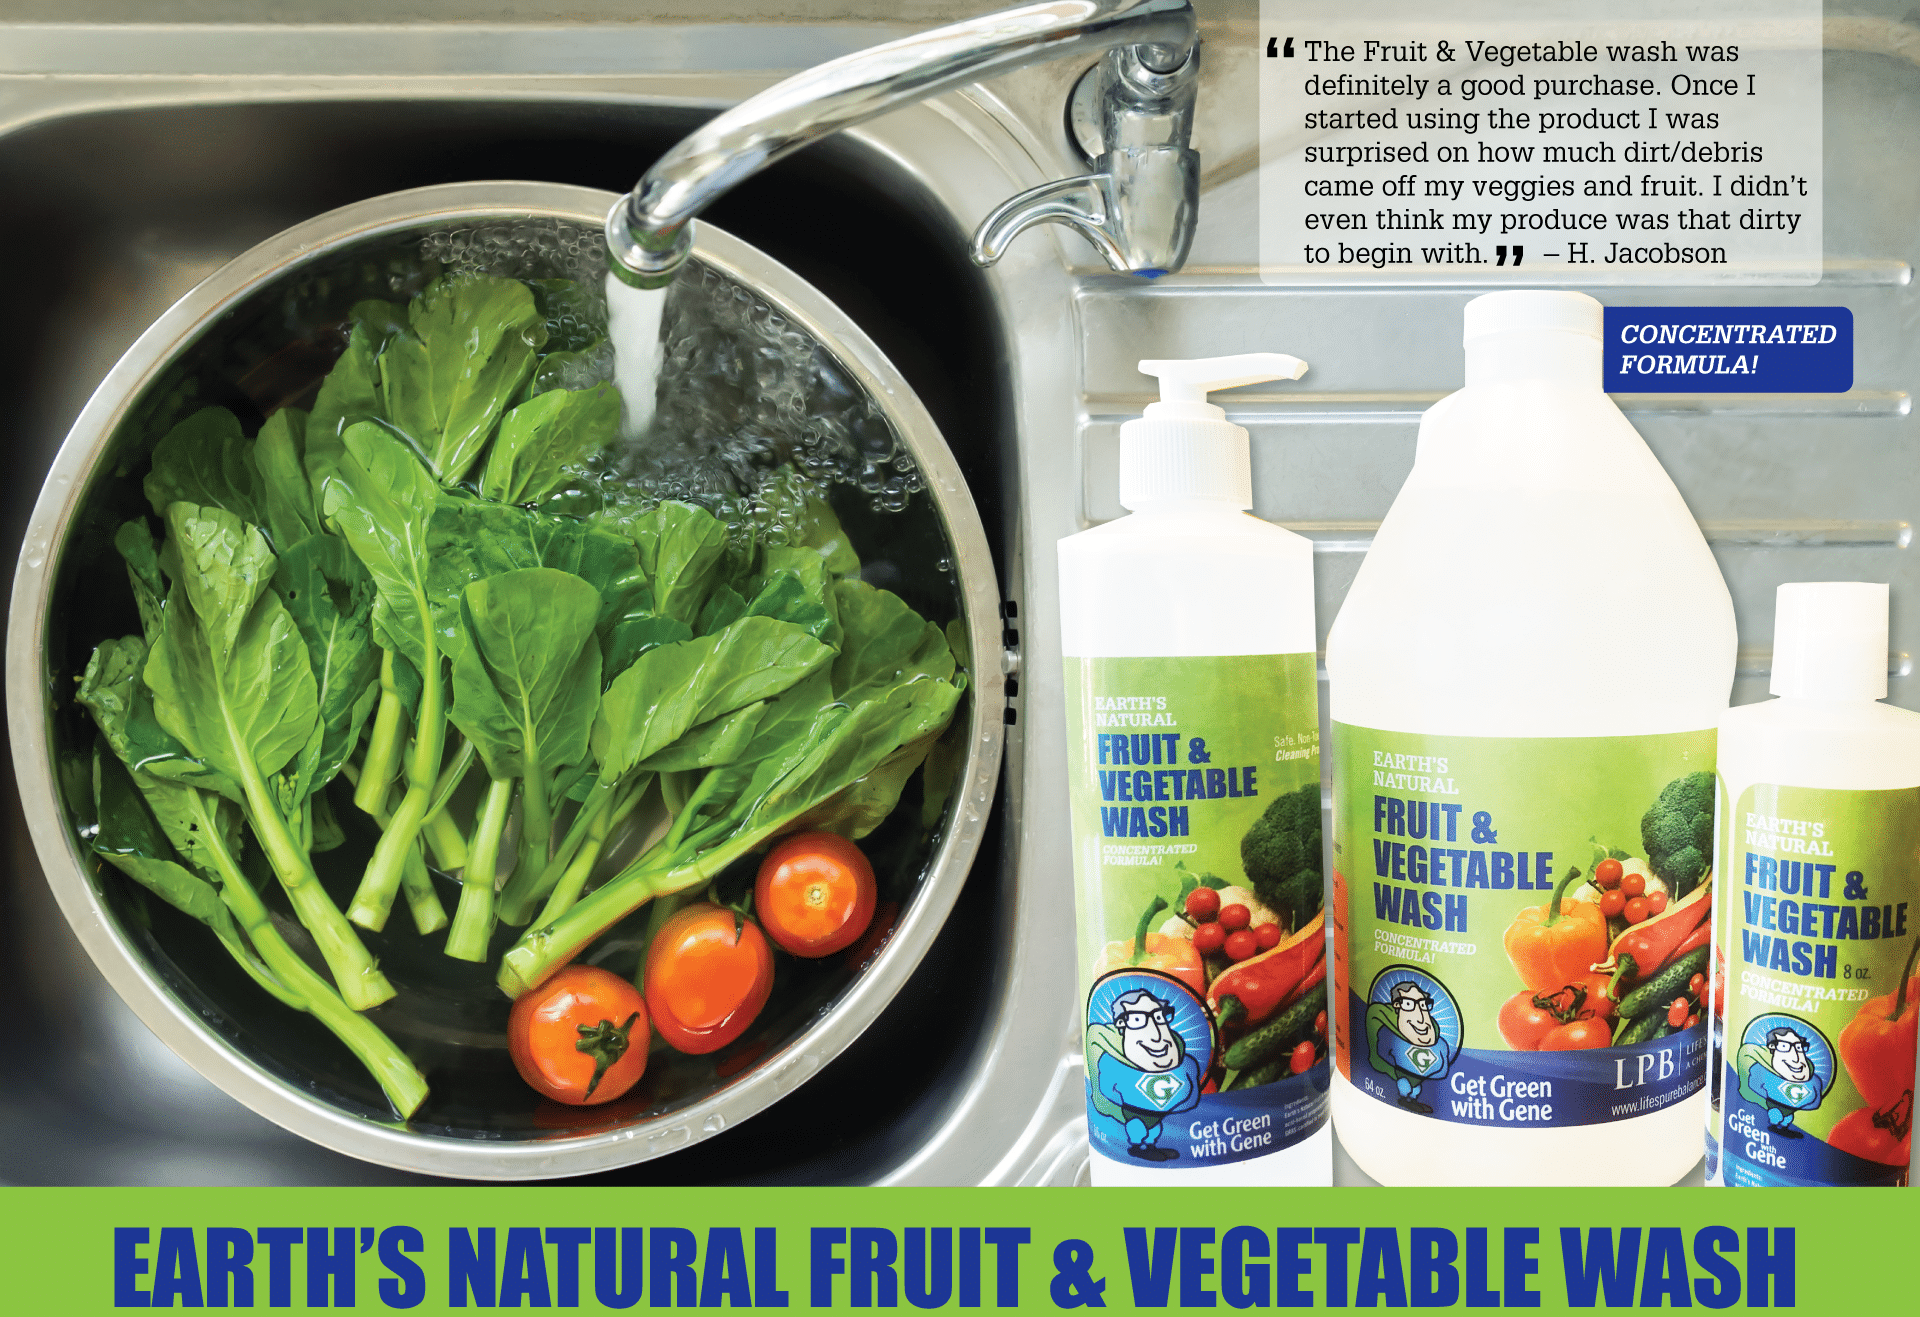 I am one of Life's Pure Balance's biggest fan. Their Earth's Natural Fruit & Vegetable wash is my favorite.